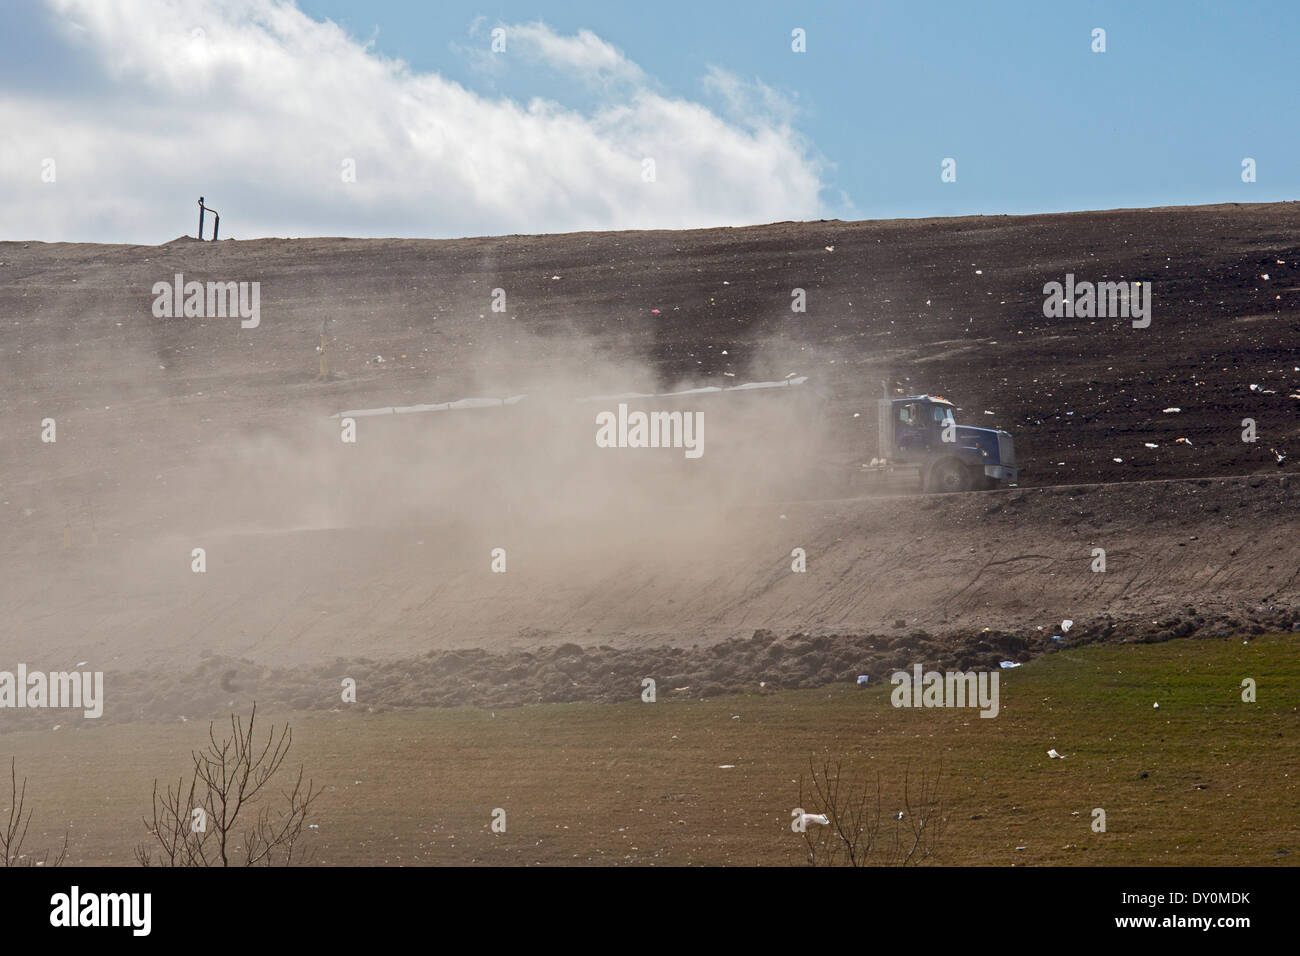 Waltz, Michigan - A truck kicks up dust as it delivers trash to Republic Services' Carleton Farms Landfill. - Stock Image